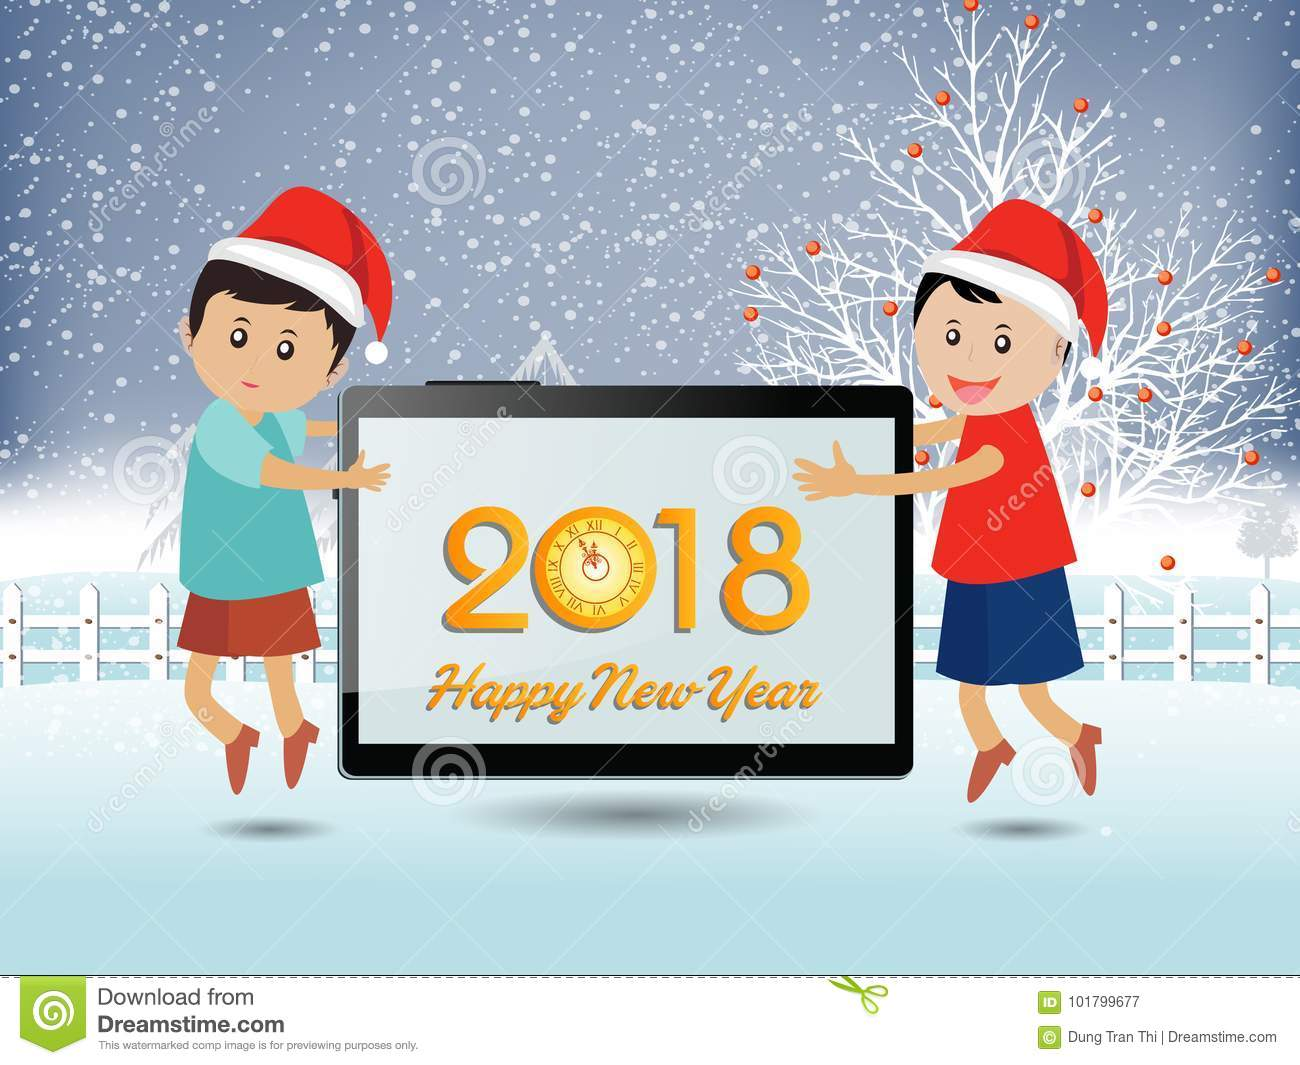 postcard happy new year 2018 and merry christmas - Merry Christmas Funny